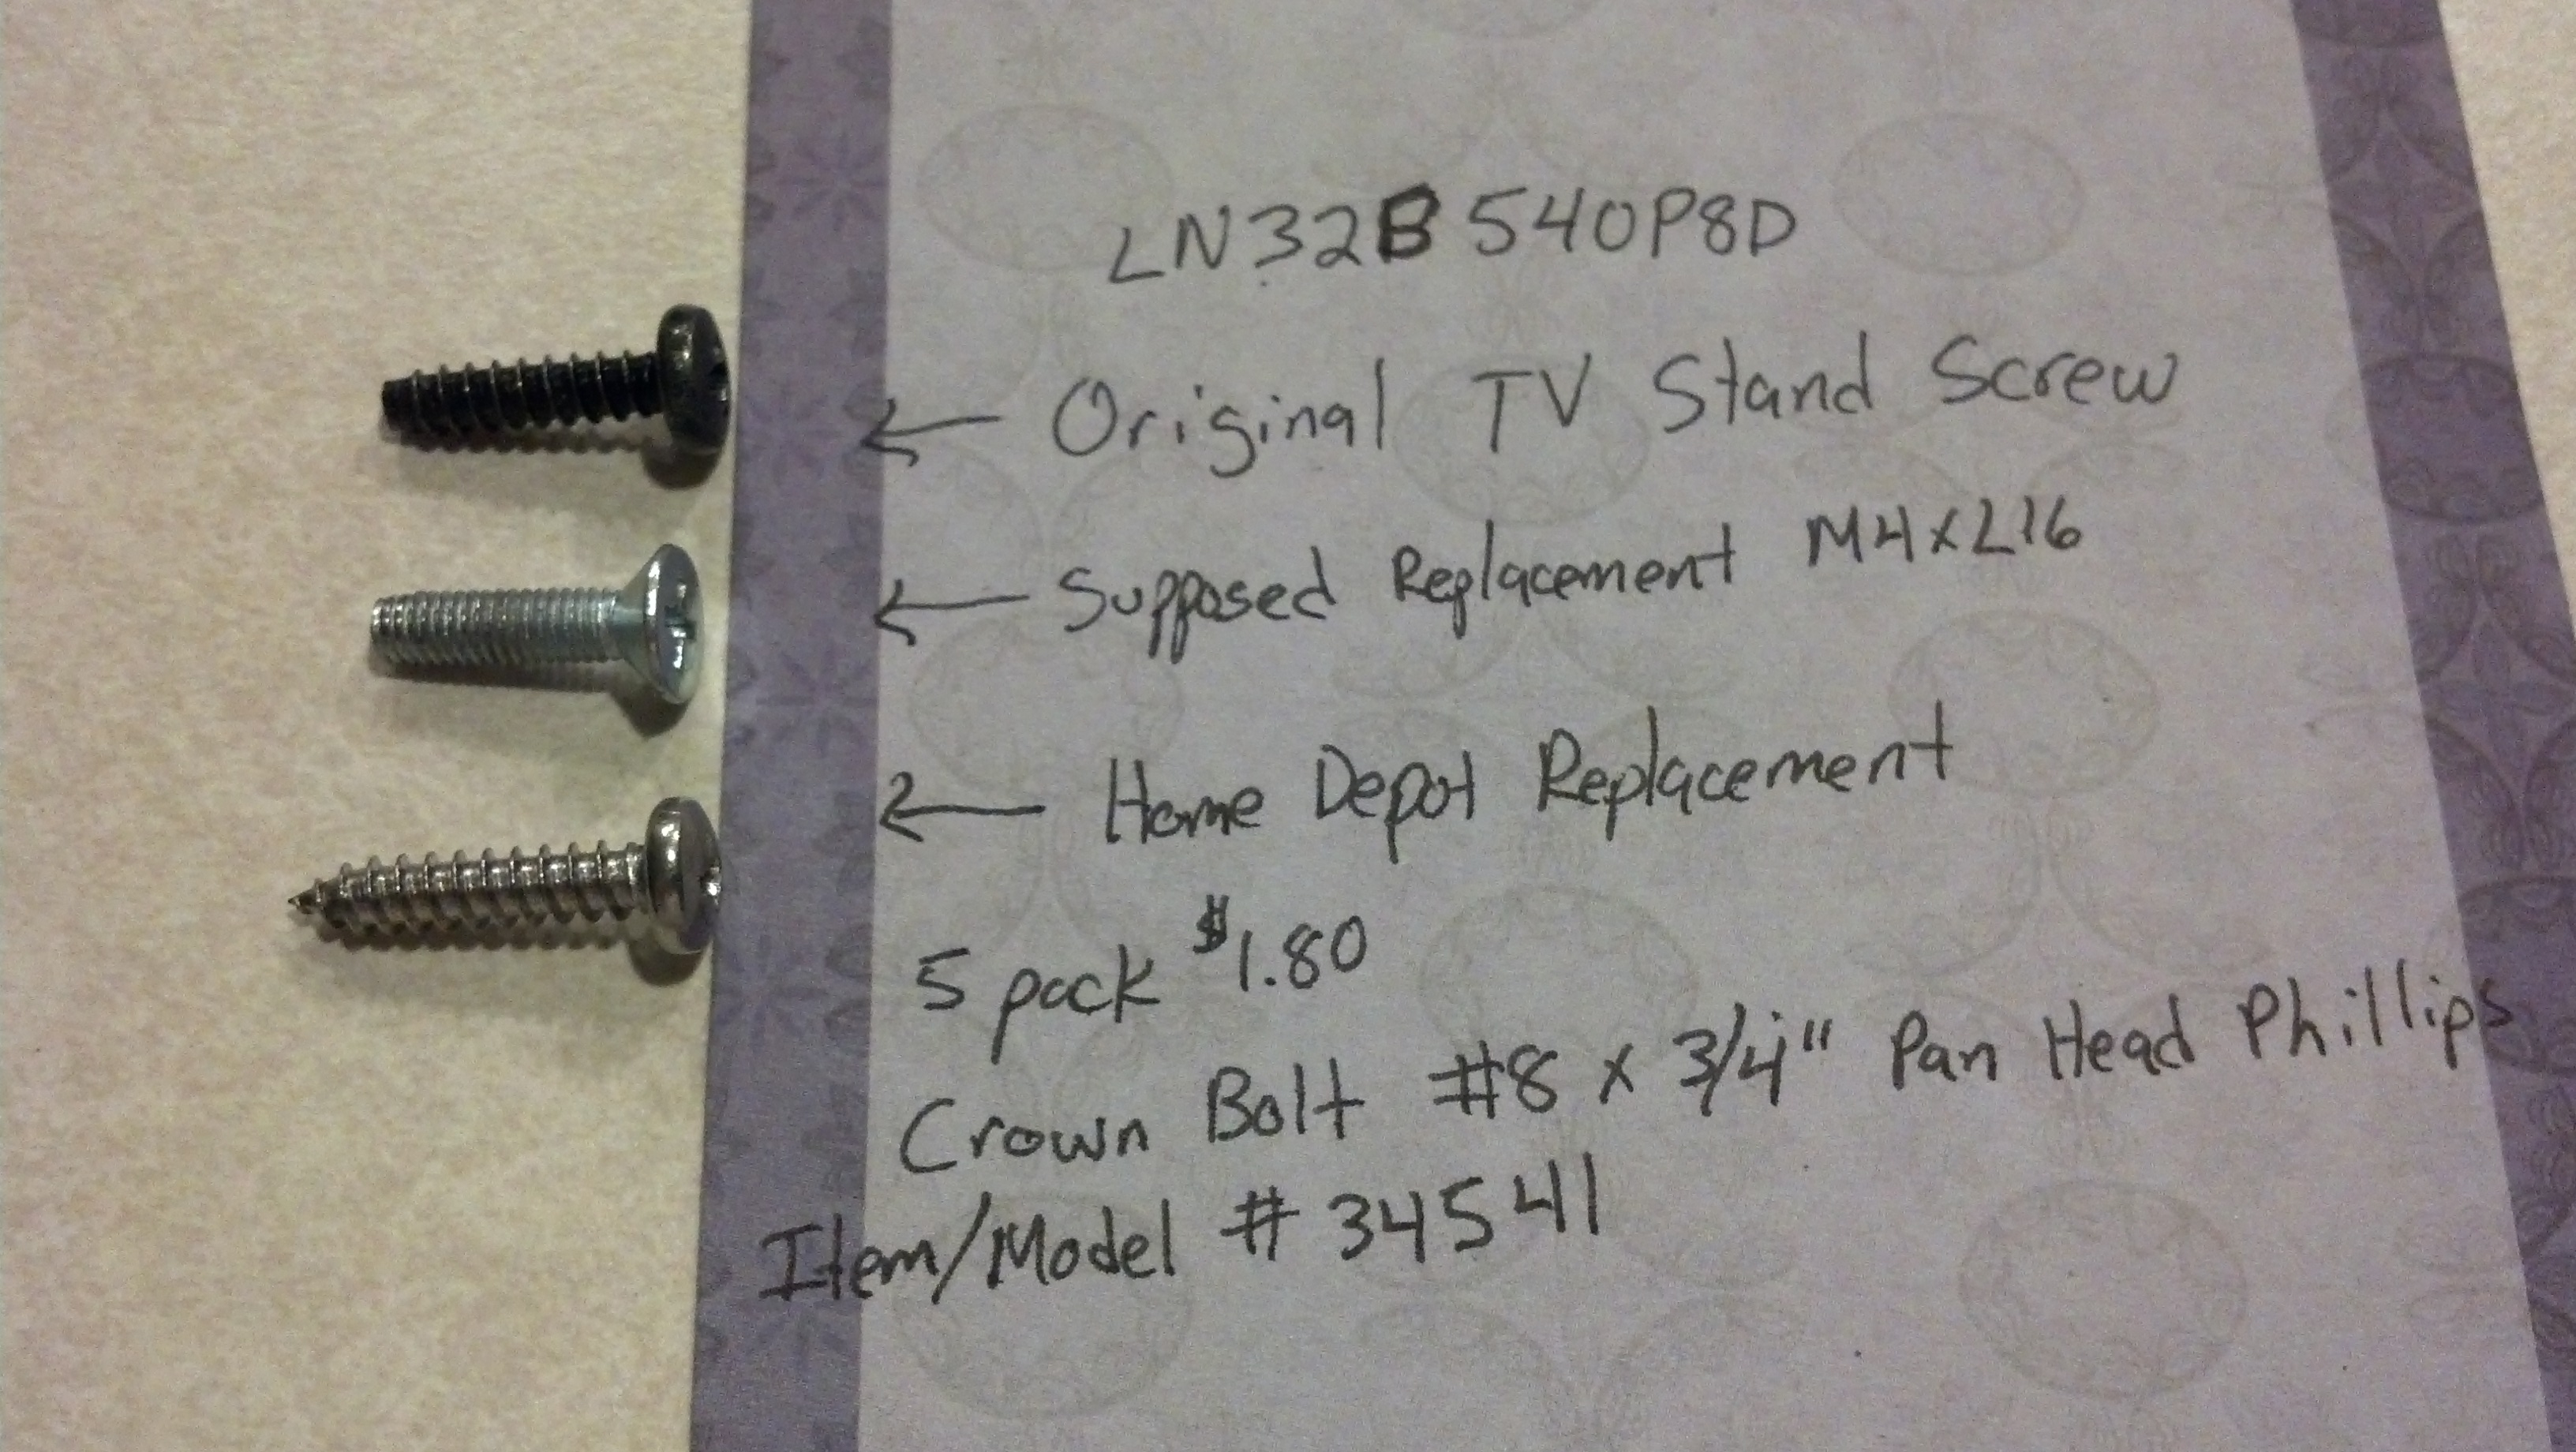 lg tv mounting screws. can anyone help me identify this screw size for my tv stand? - avs forum | home theater discussions and reviews lg mounting screws